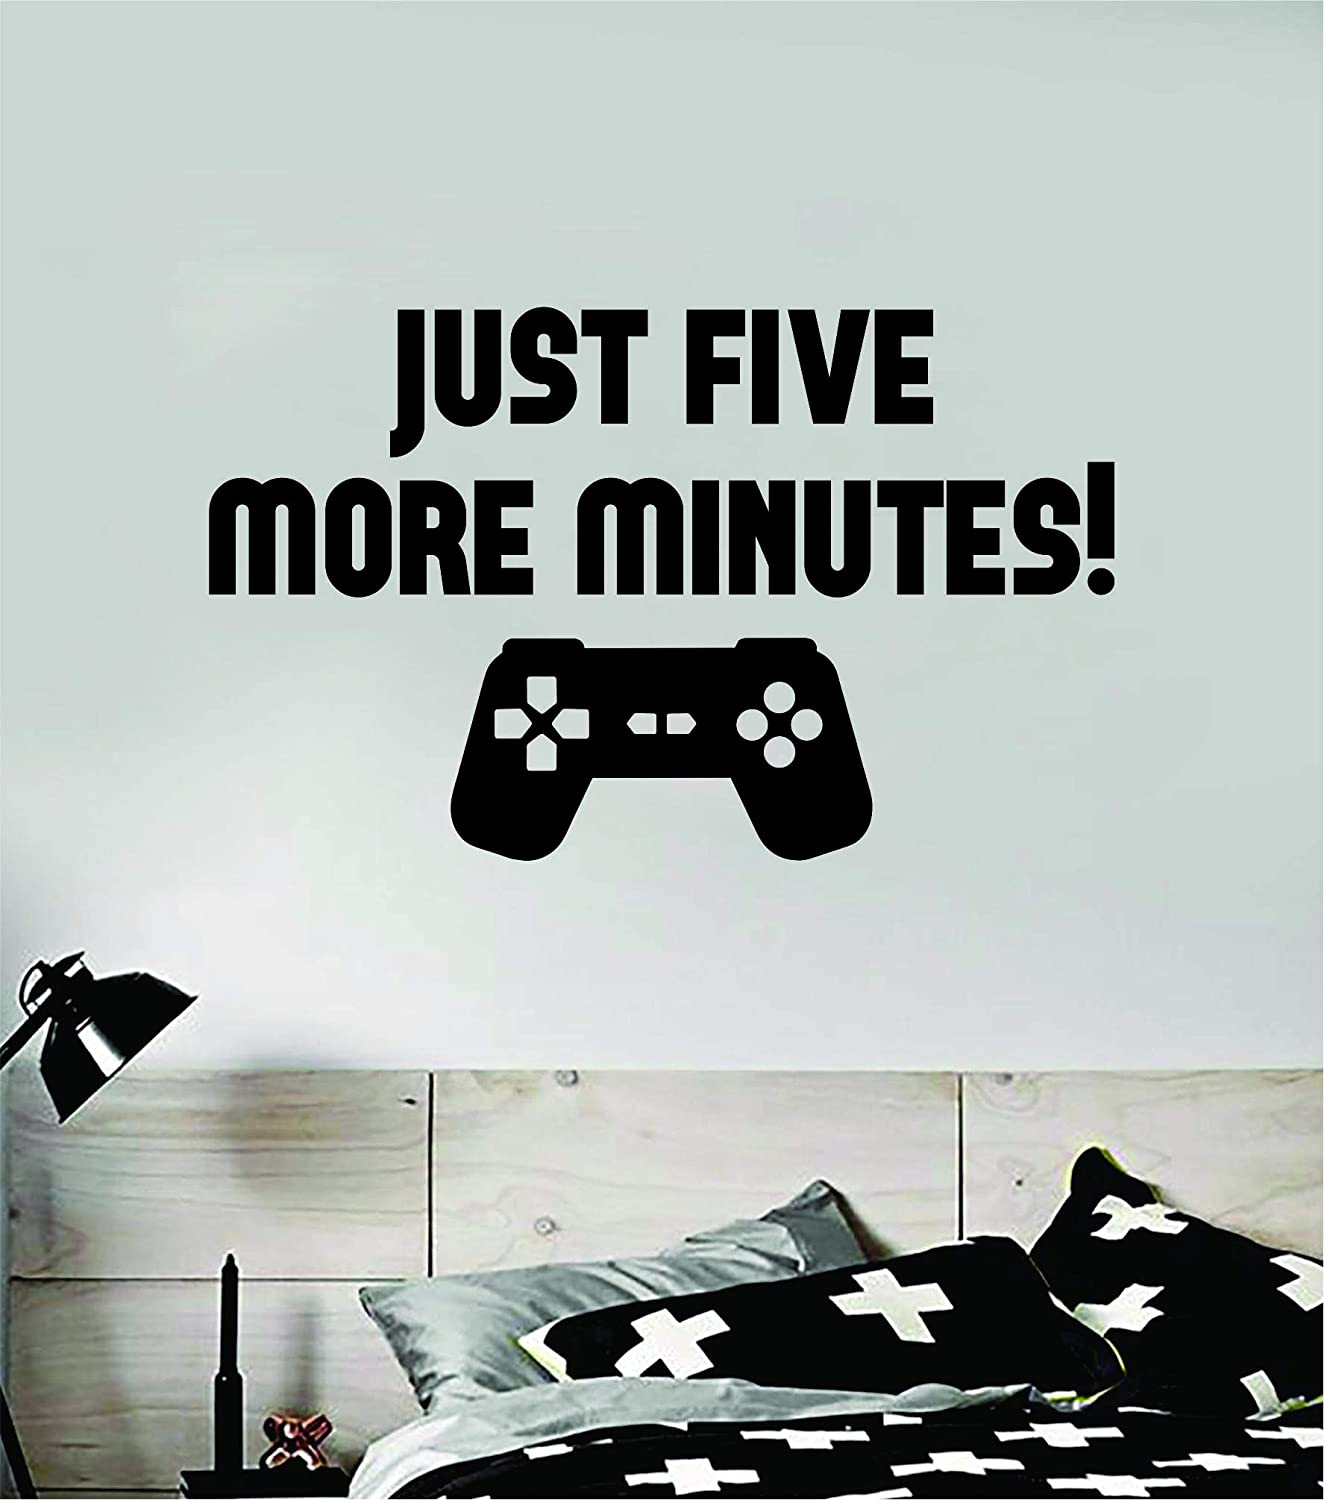 Just Five More Minutes Gamer Wall Decal Quote Home Room Decor Decoration Art Vinyl Sticker Inspirational Funny Controller Gaming Nerd Geek Teen Video PC Console Game Kids